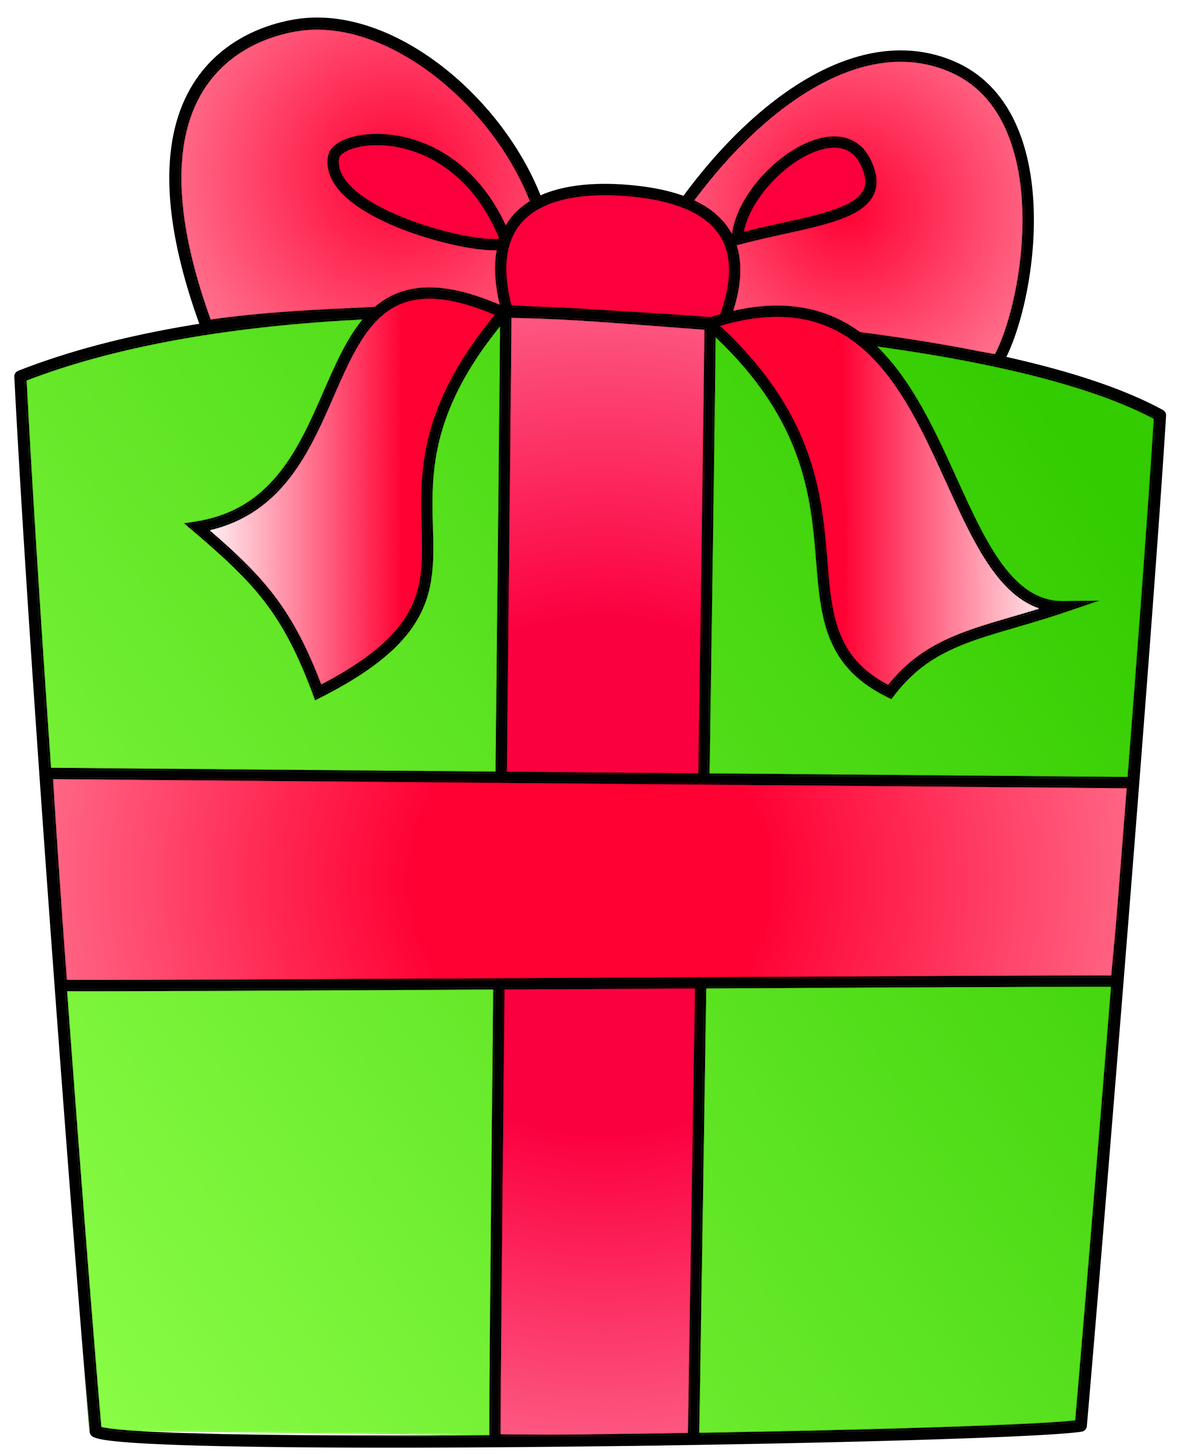 Clipart box green and red 2d.